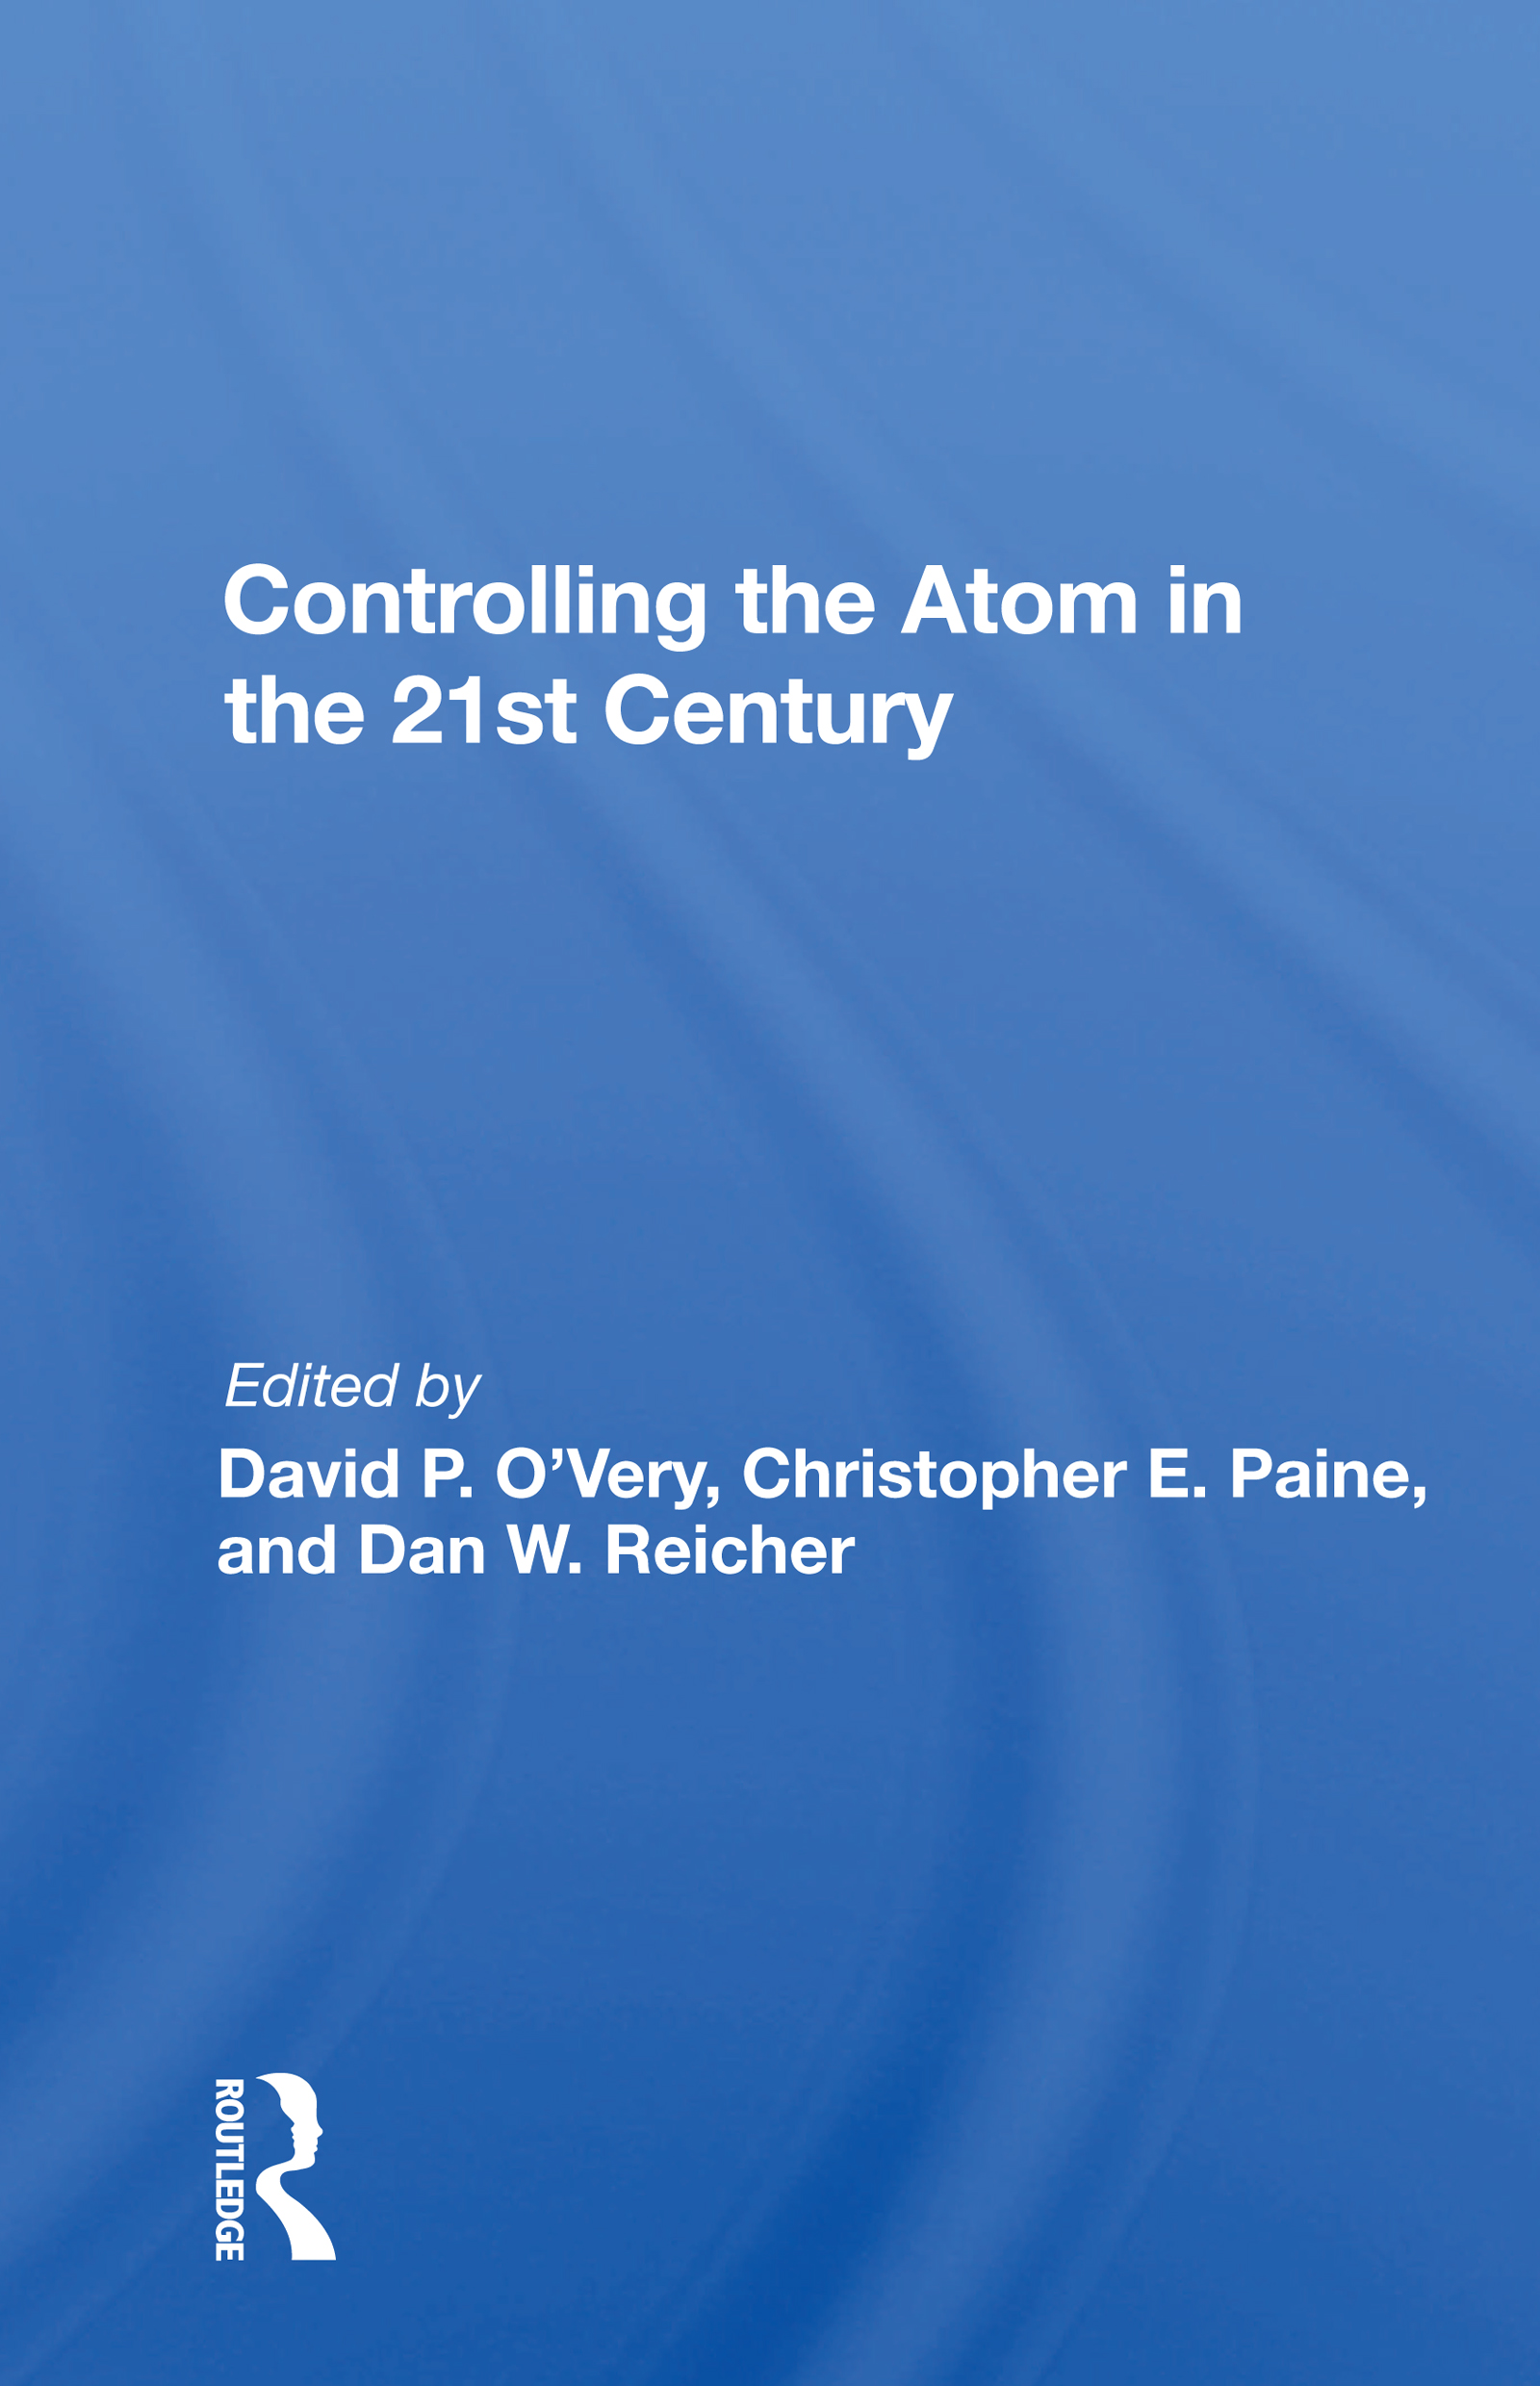 Controlling the Atom in the 21st Century